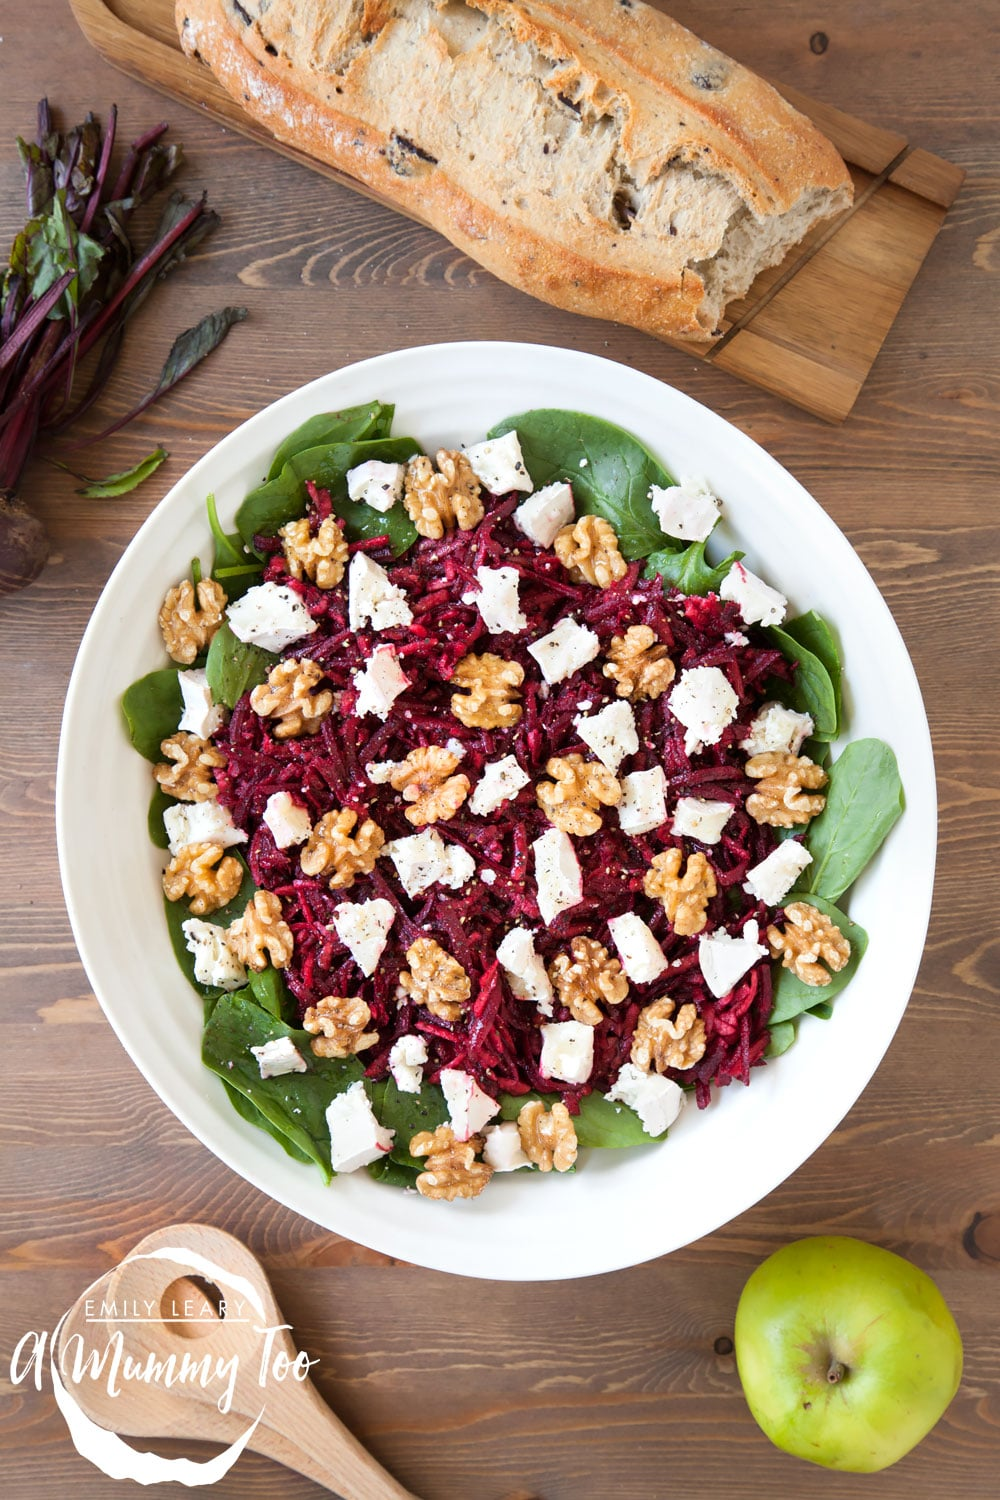 Top your apple and beetroot salad with goat's cheese and walnuts